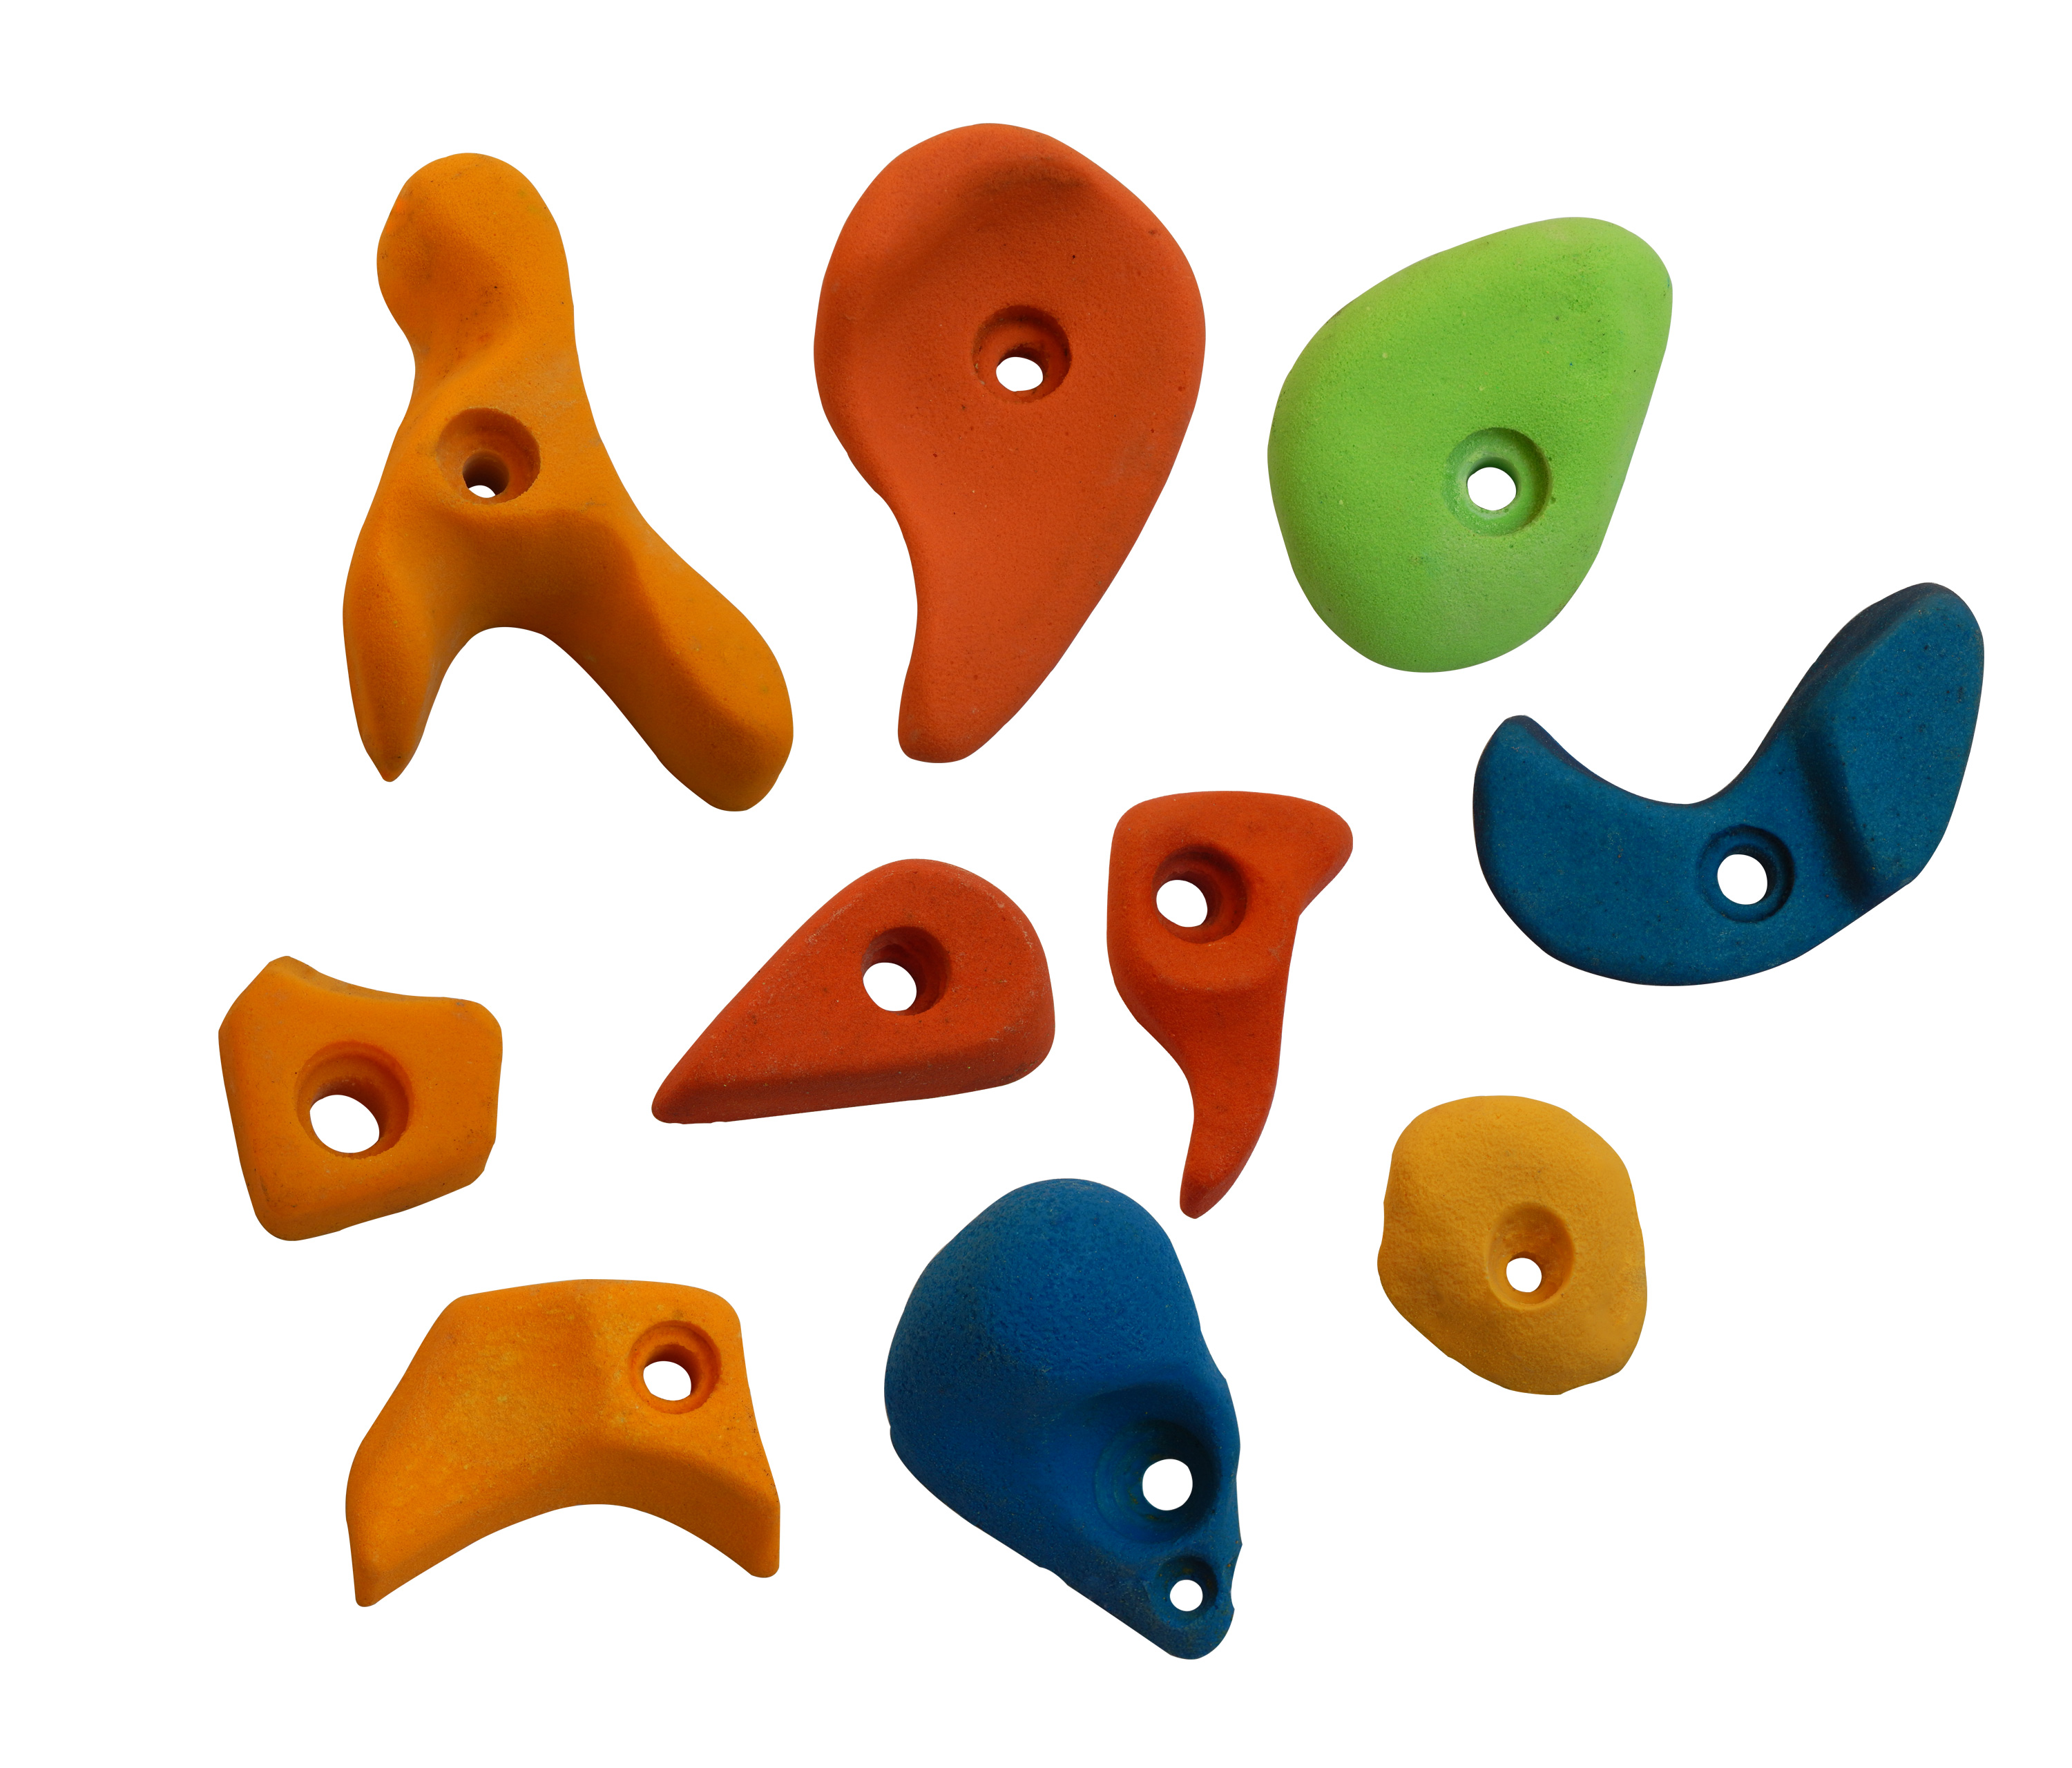 Mix Climbing Holds Manufacturers in Bhubaneswar